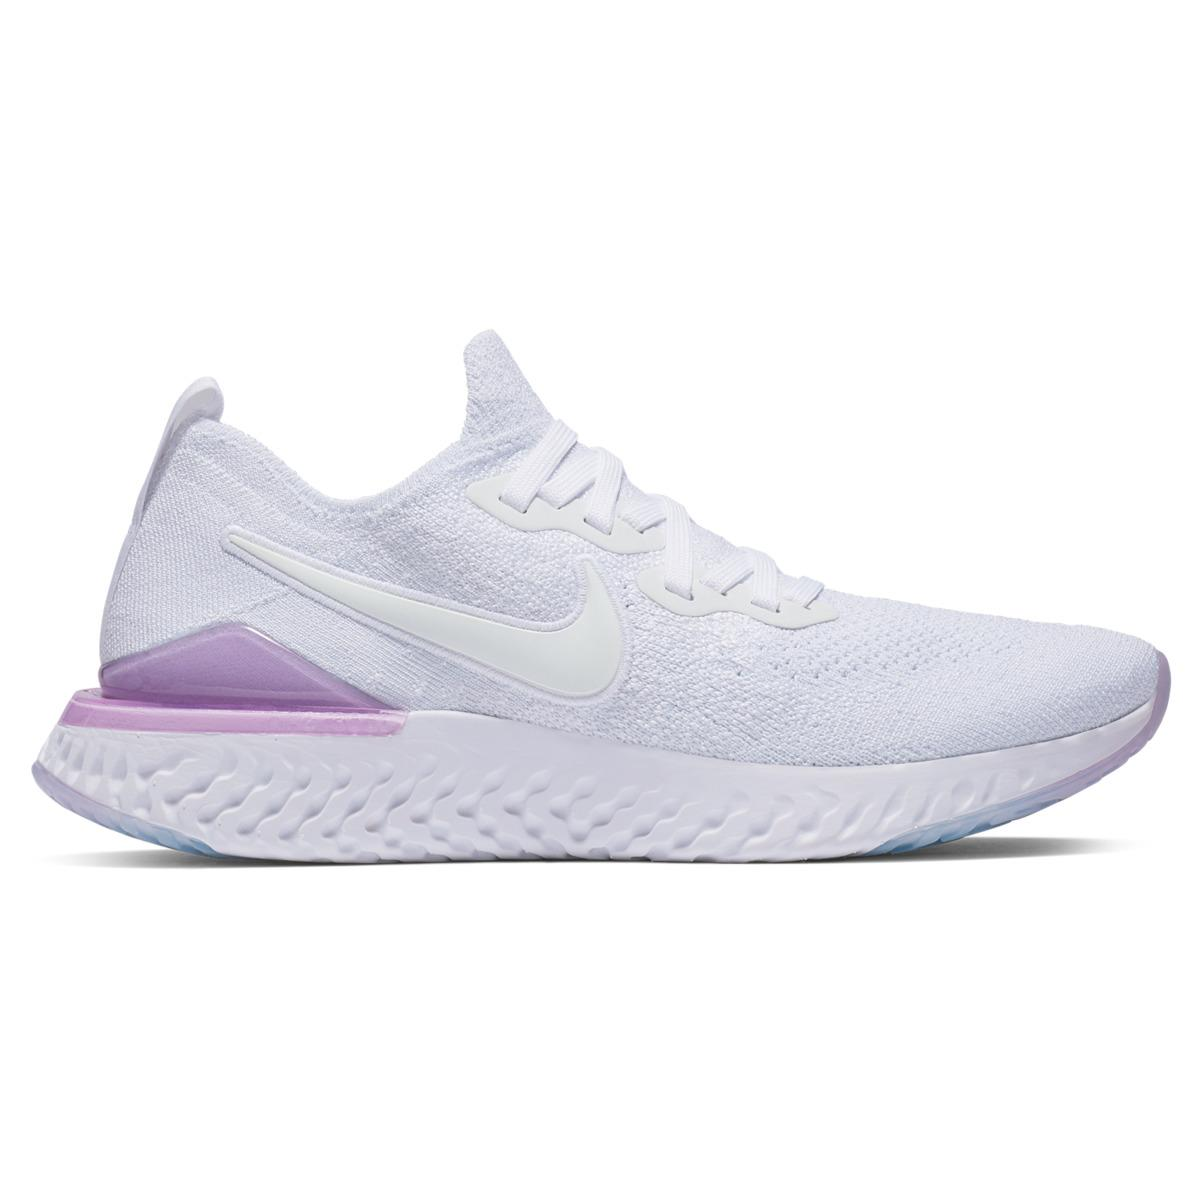 5fbbb212358b Nike Epic React Flyknit 2 Running Shoes in White - Save 1% - Lyst